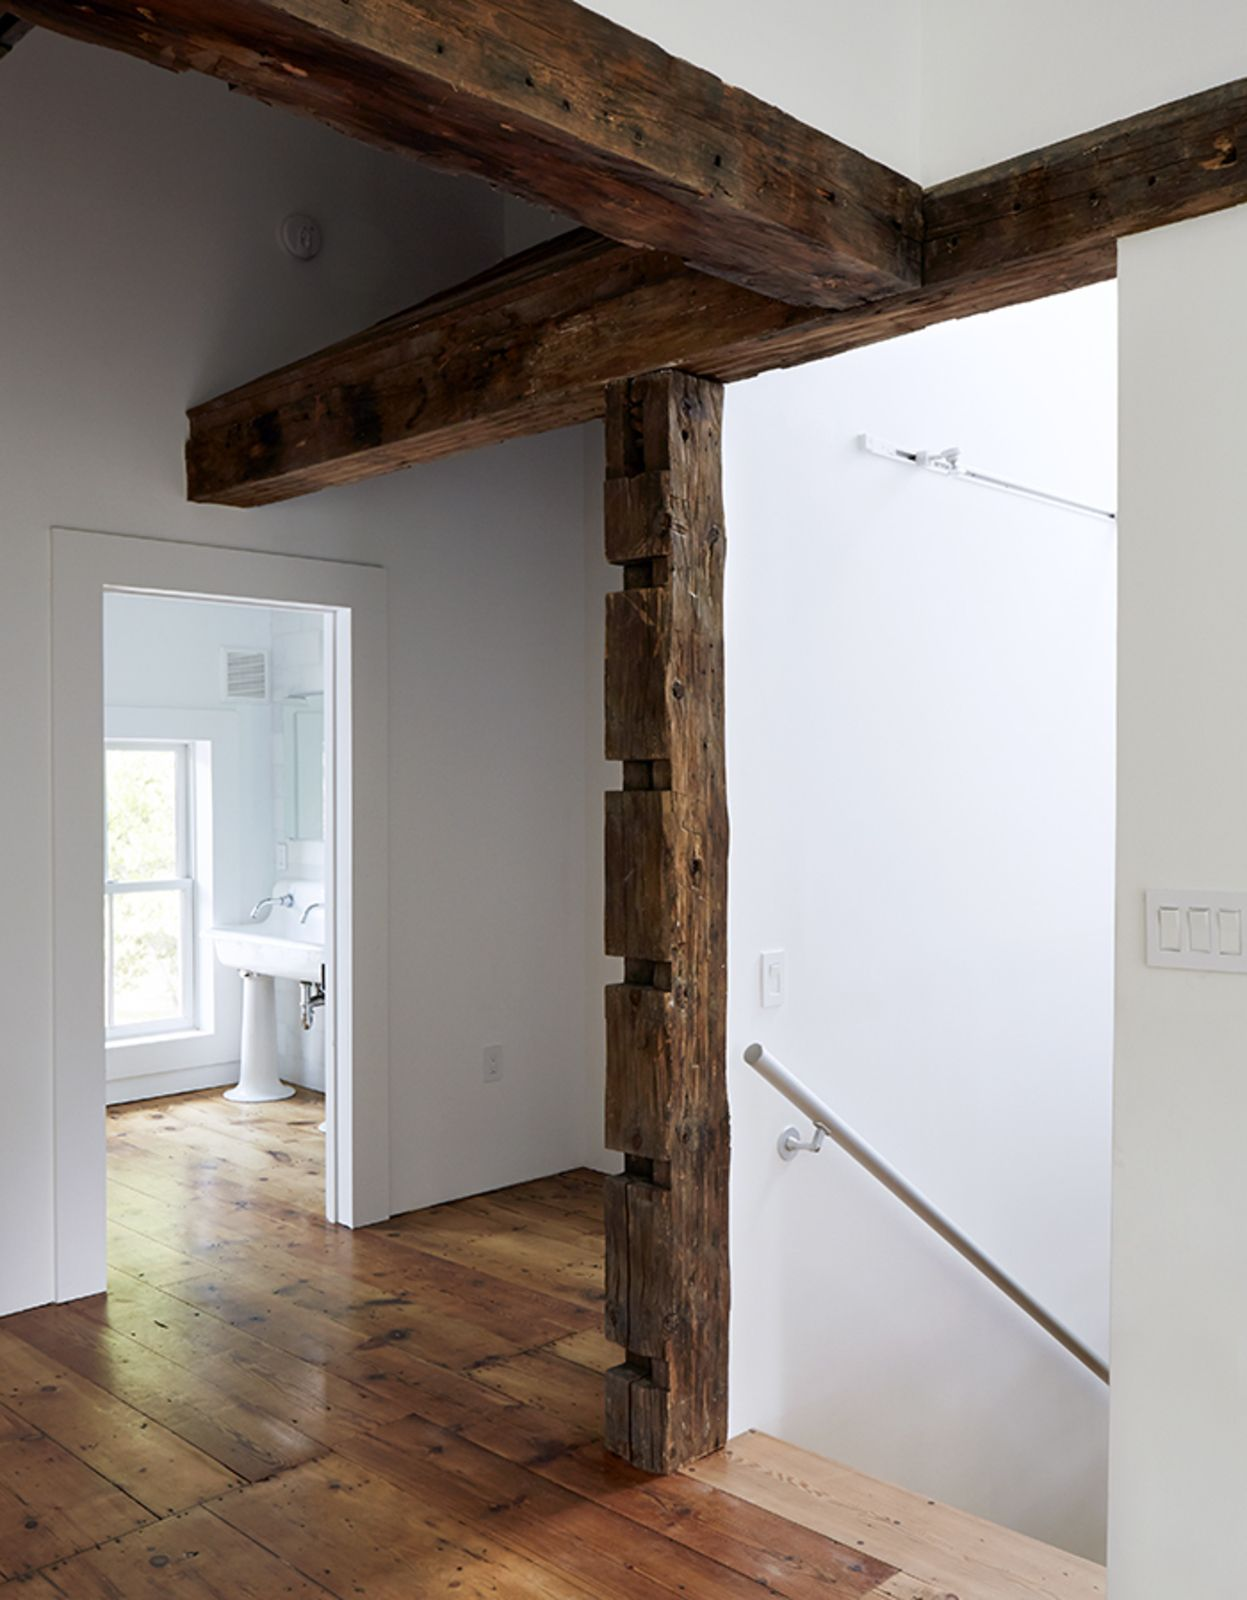 Inspiration Modern Farmhouse From A Mind Bending Renovation Brings House Renovation Projects Exposed Wood Wood Beams